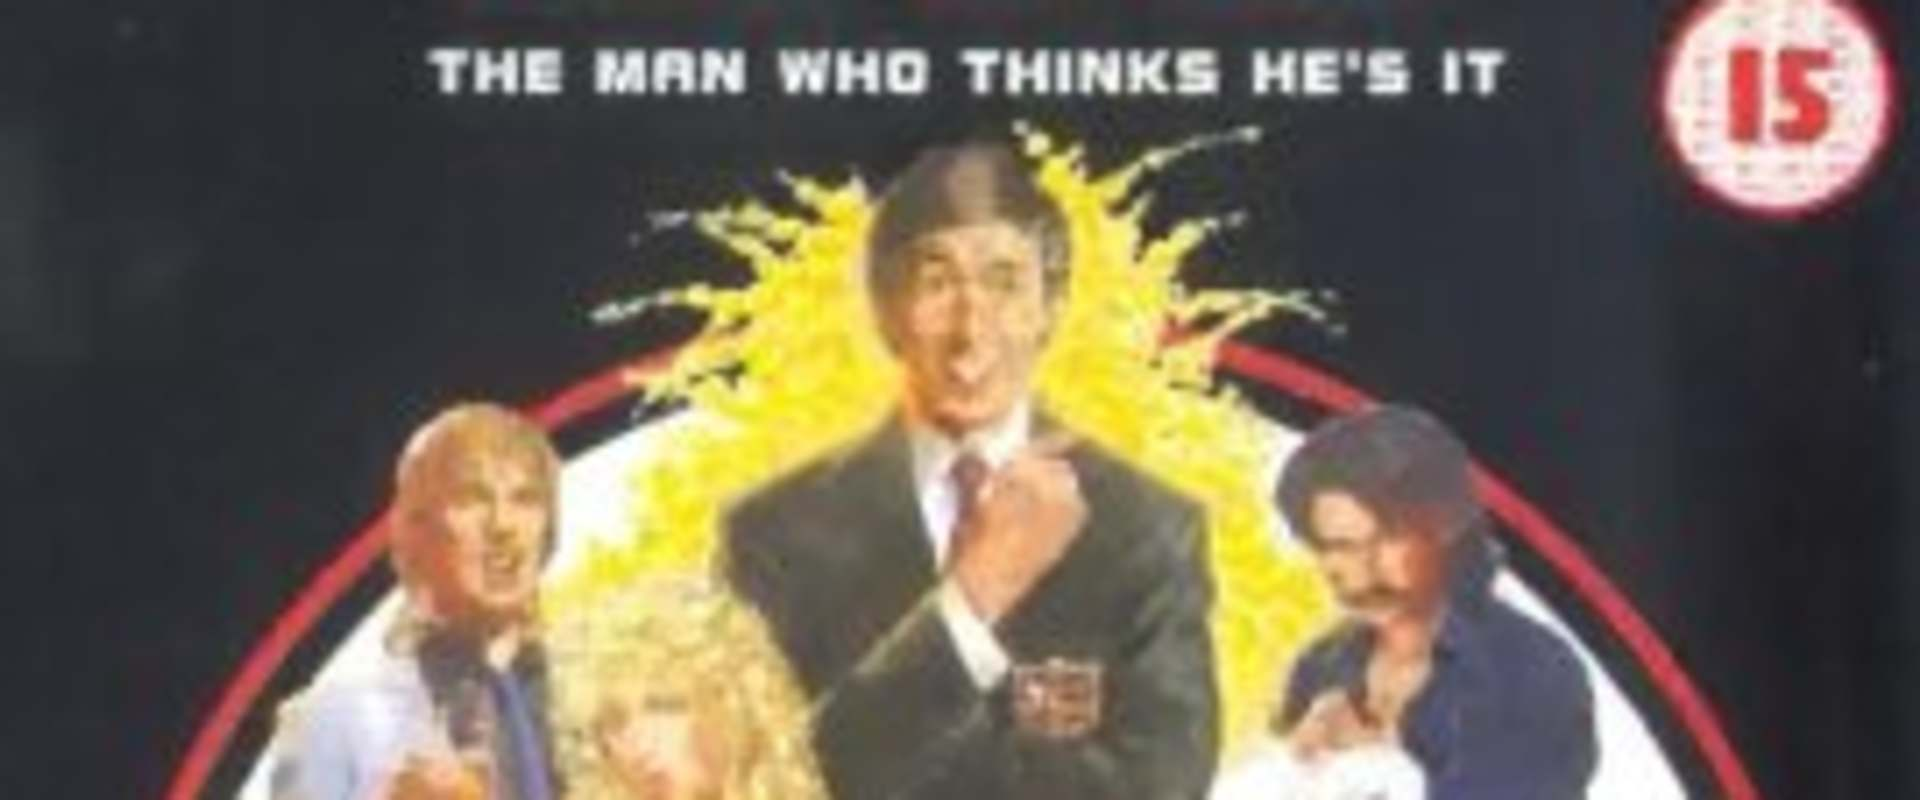 Steve Coogan: The Man Who Thinks He's It background 1